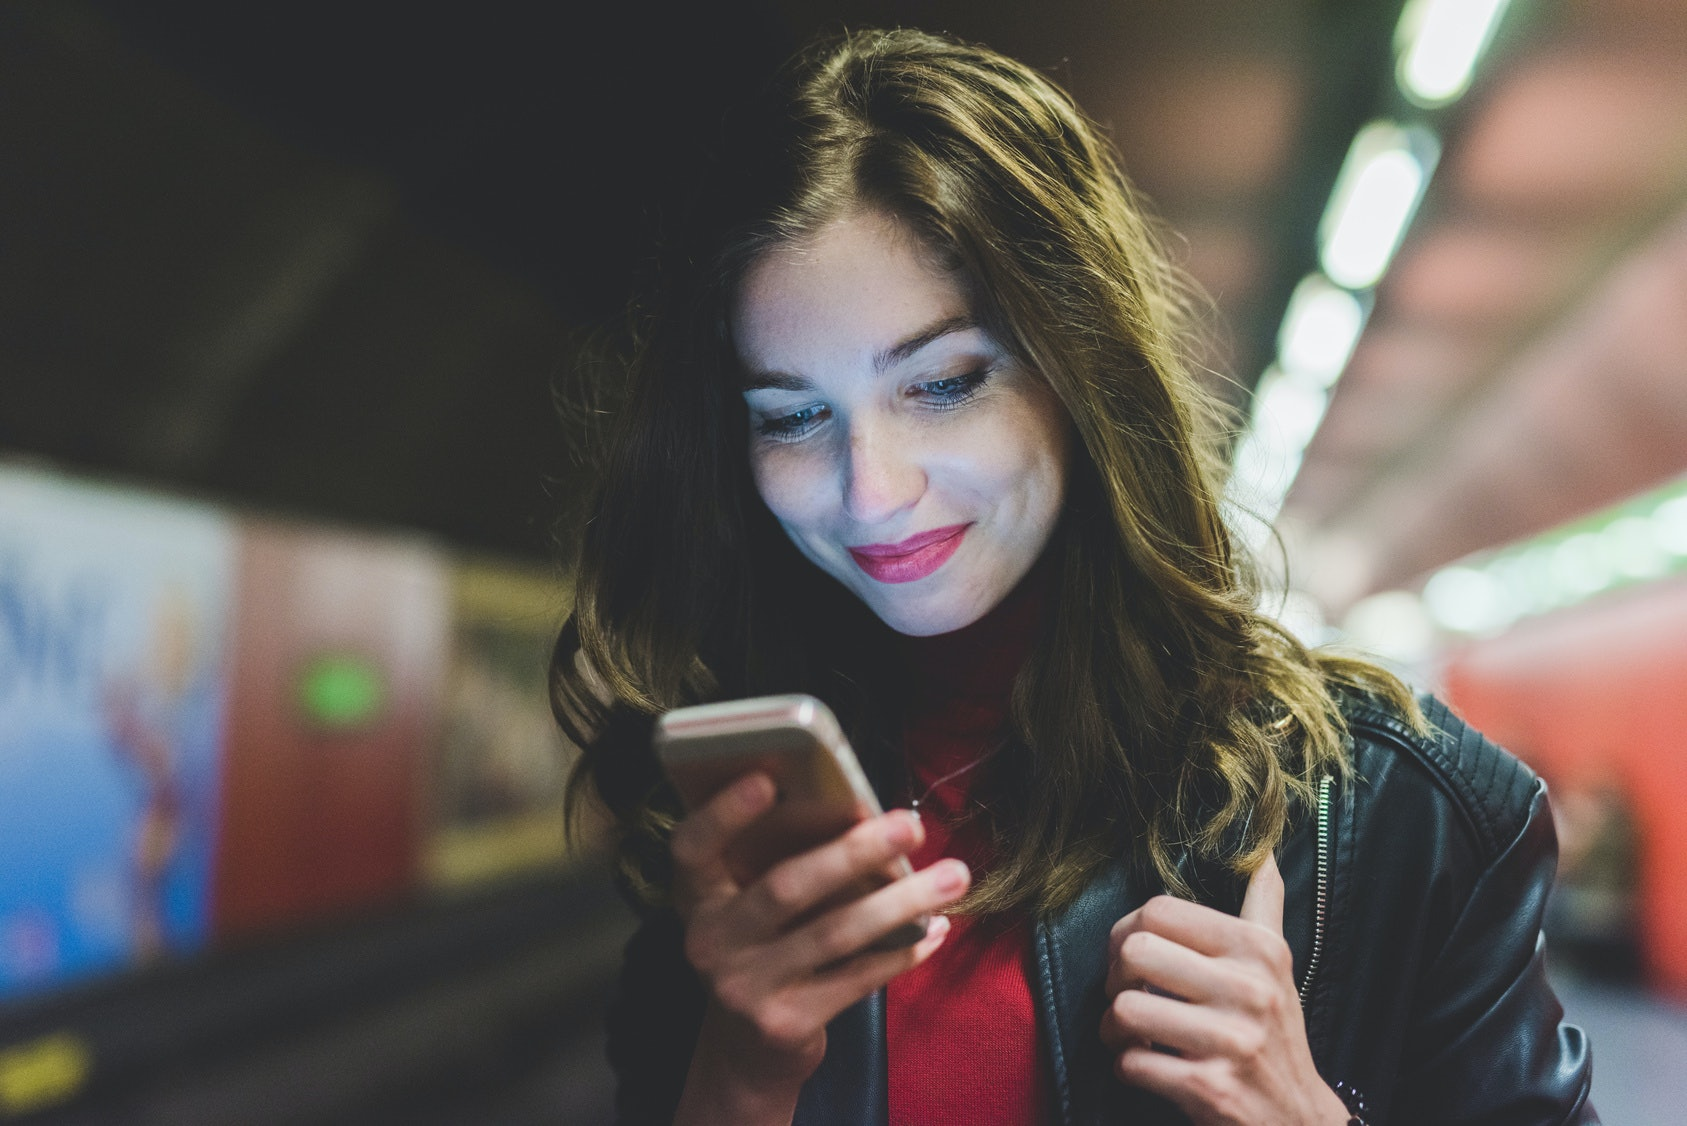 Internet Hookup How Many Emails Before Meeting